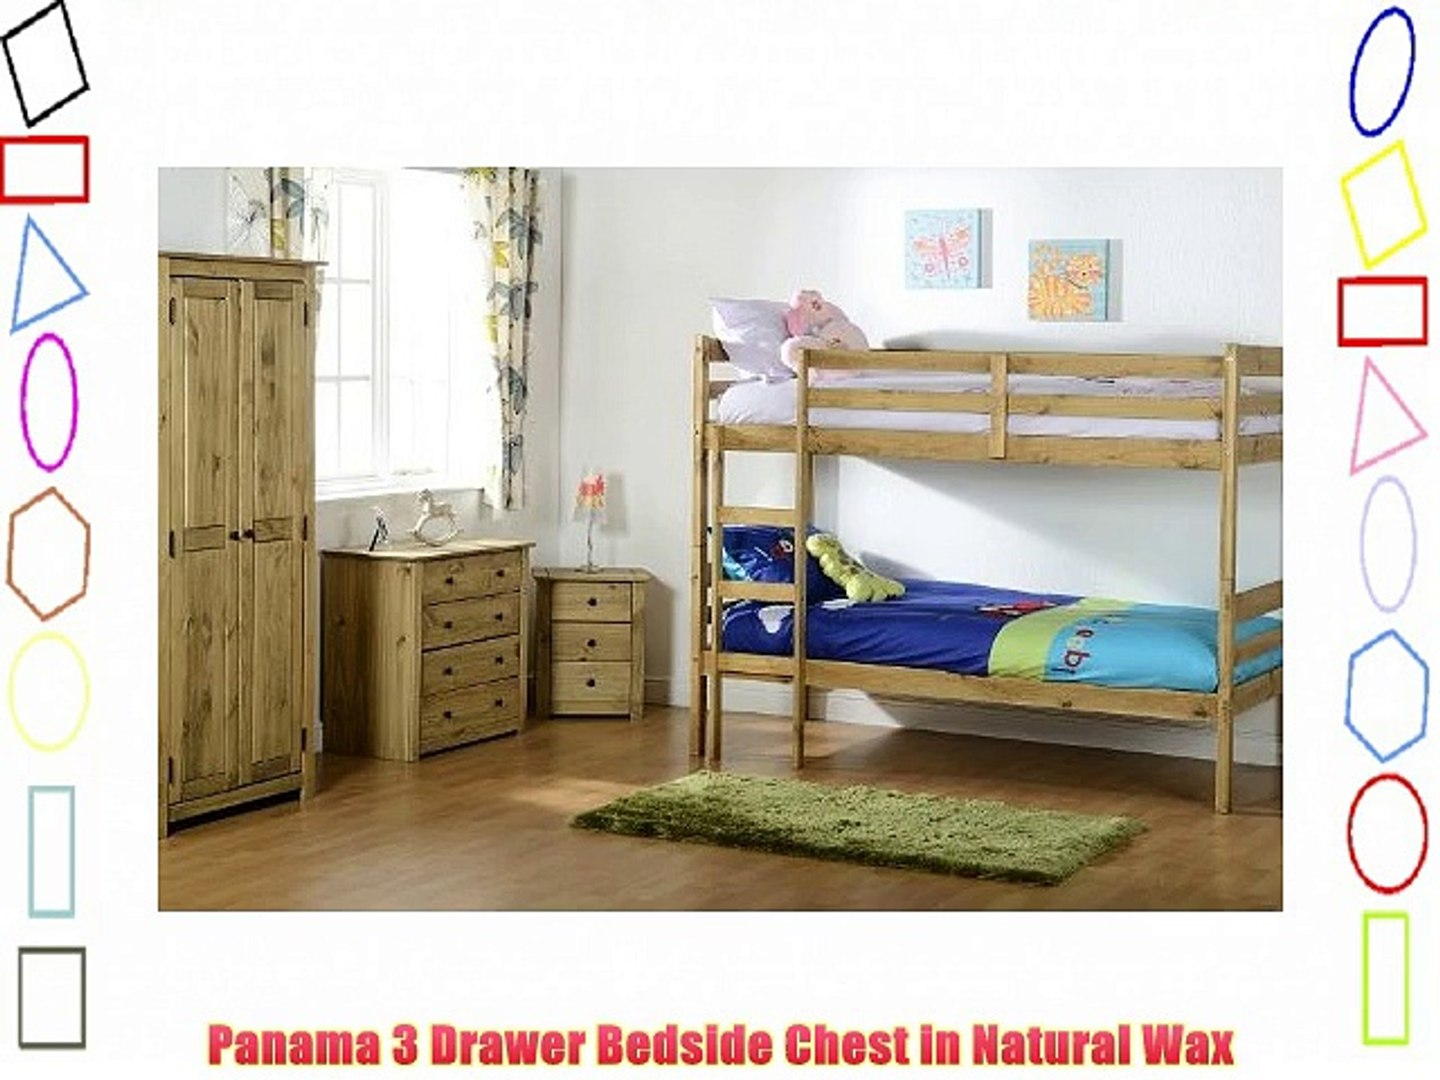 Panama 3 Drawer Bedside Chest in Natural Wax Solid Pine Wood Bedroom Furniture